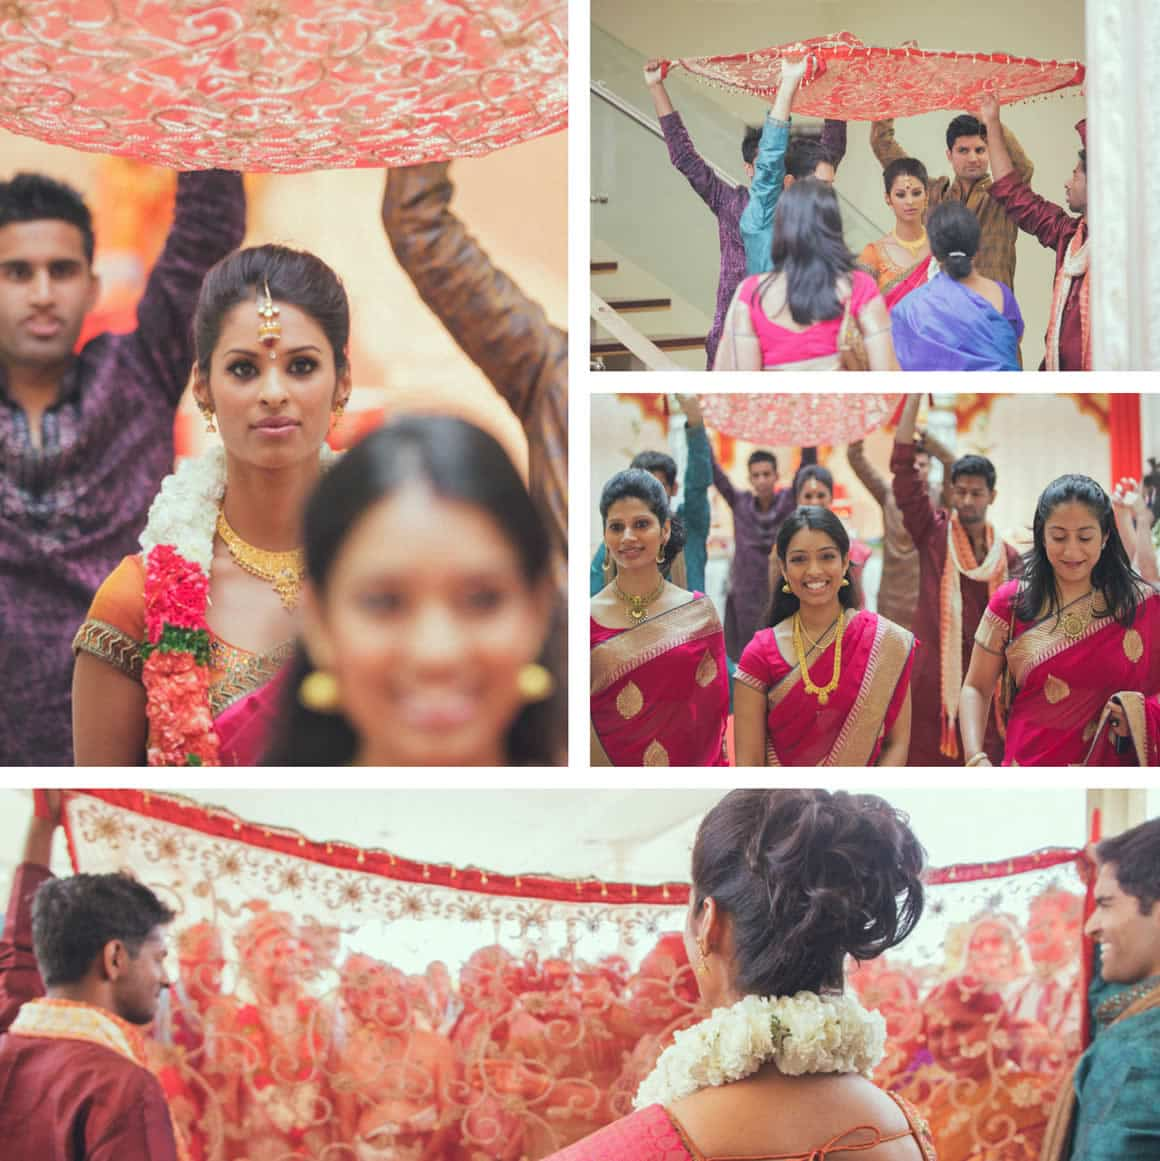 melbourne-weddings-india